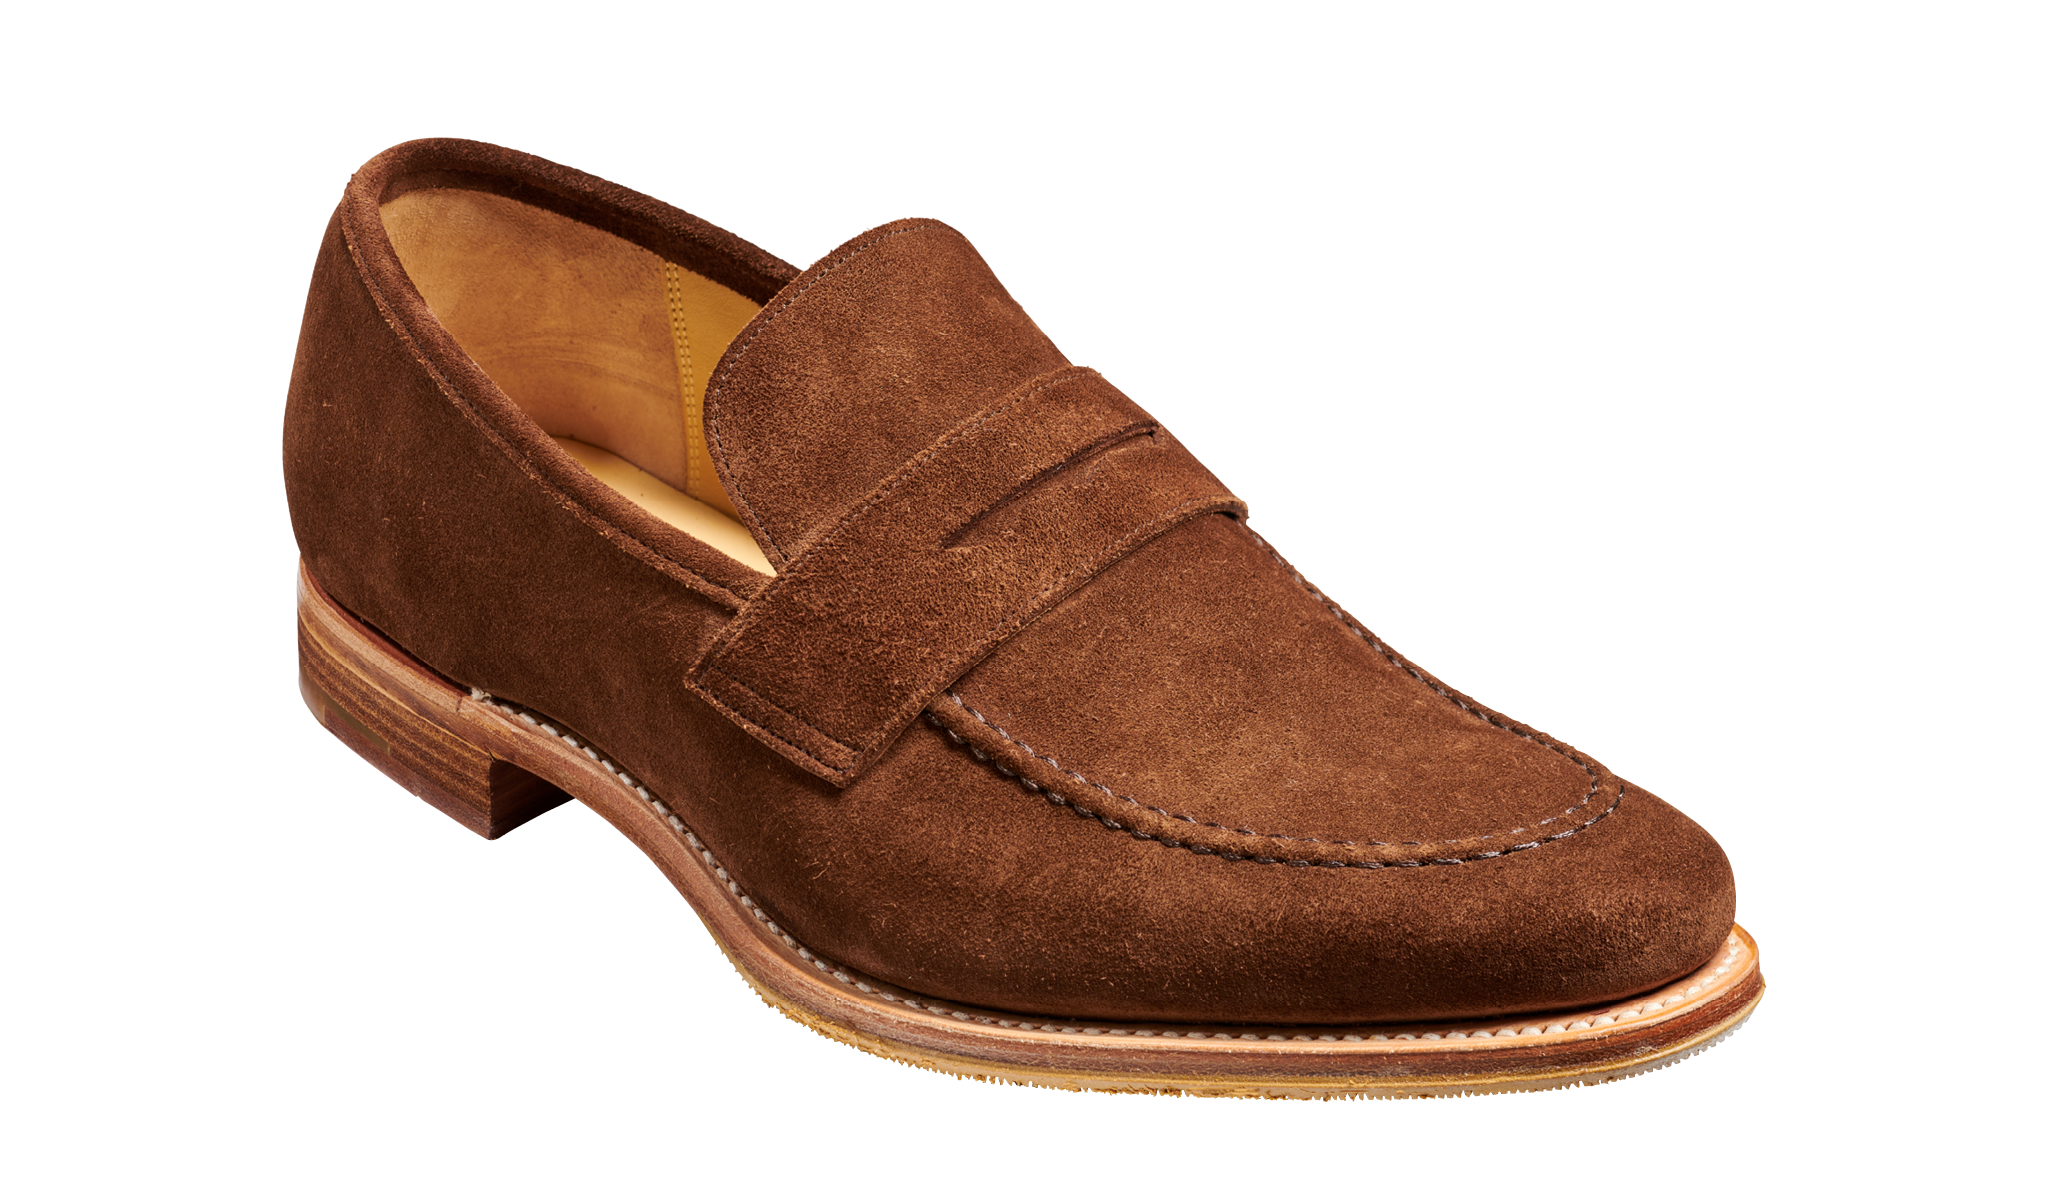 Gates - A men's loafer by Barker Shoes.